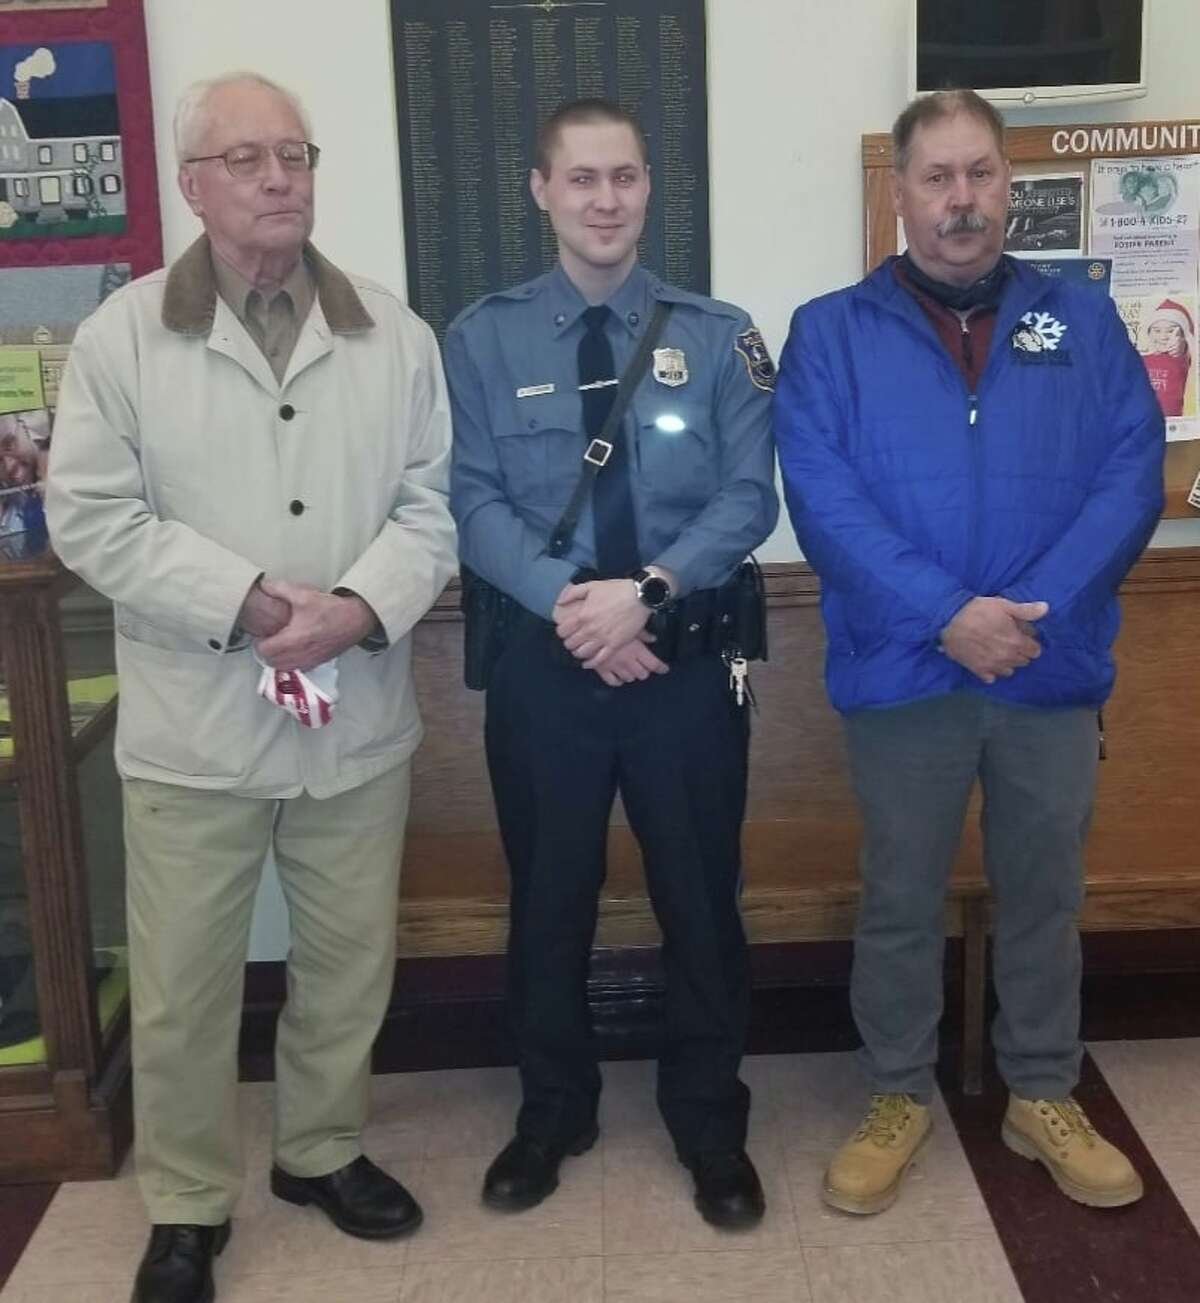 Police officer Christopher Cockburn, right, of Goshen died on Tuesday, Sept. 14 from COVID-19. He's pictured with his father-in-law and retired police officer Stanley Lupinski, left, and his son Andrew, middle.